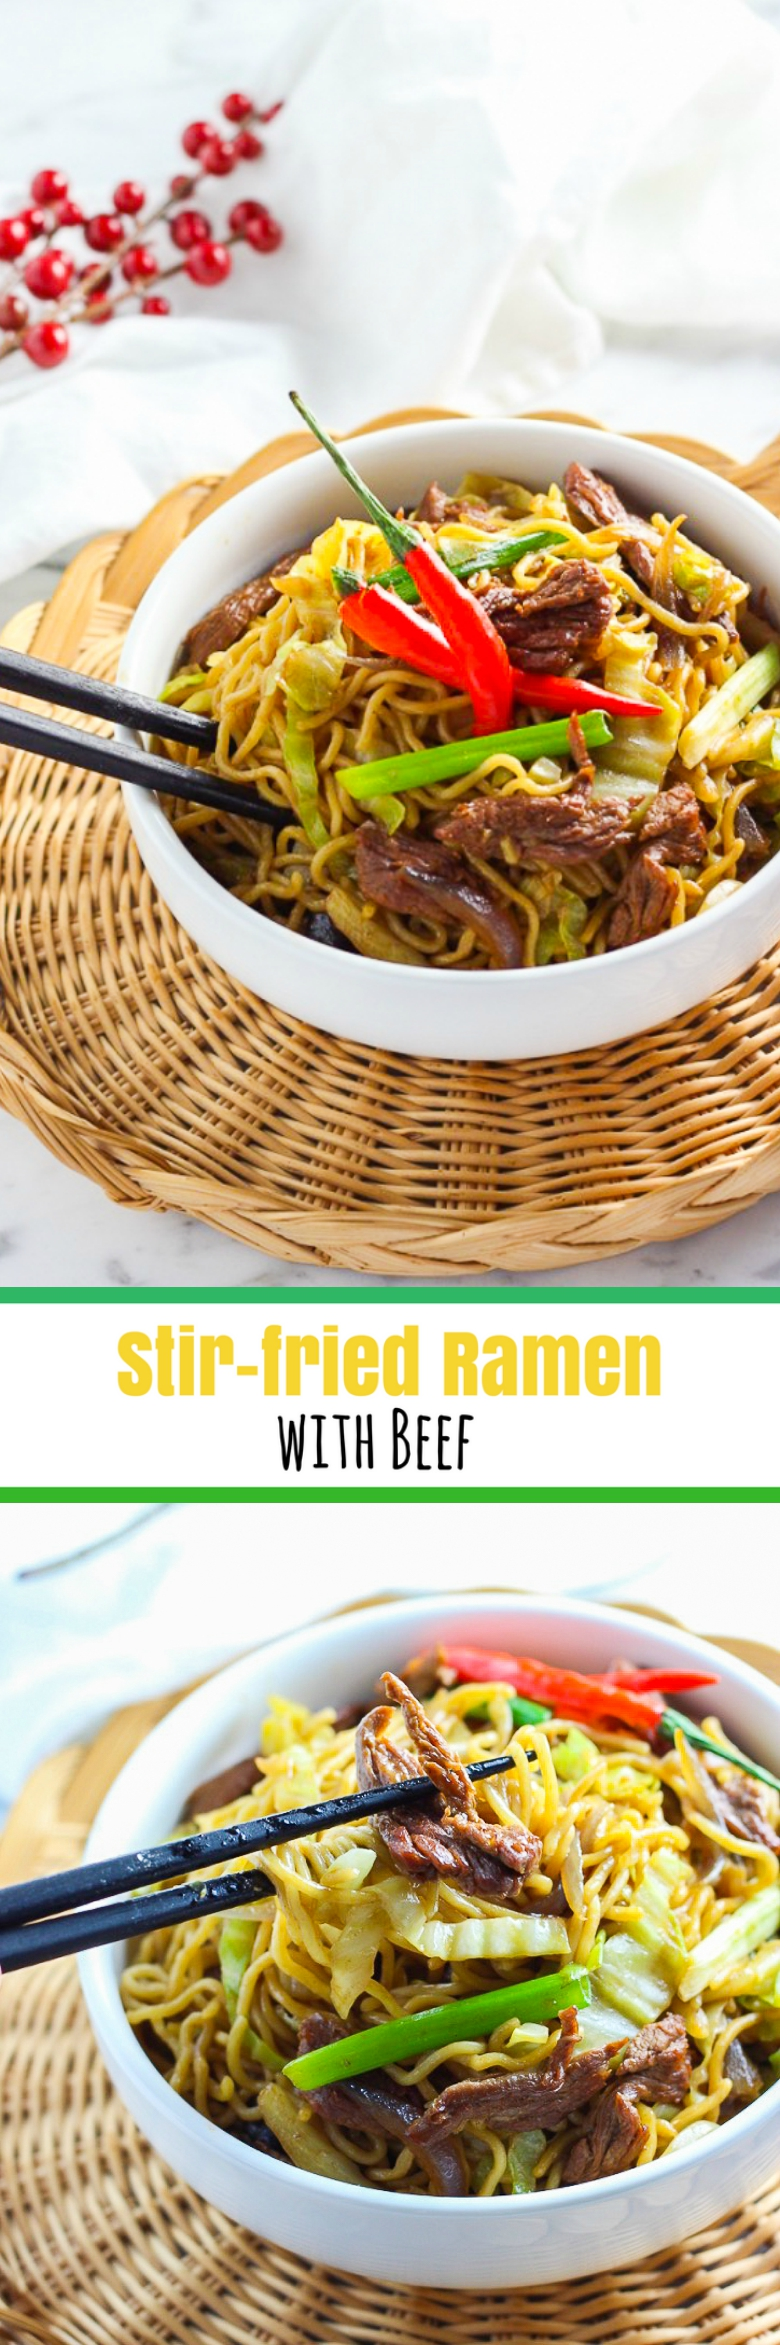 Stir-fried Ramen With Beef for Pinterest